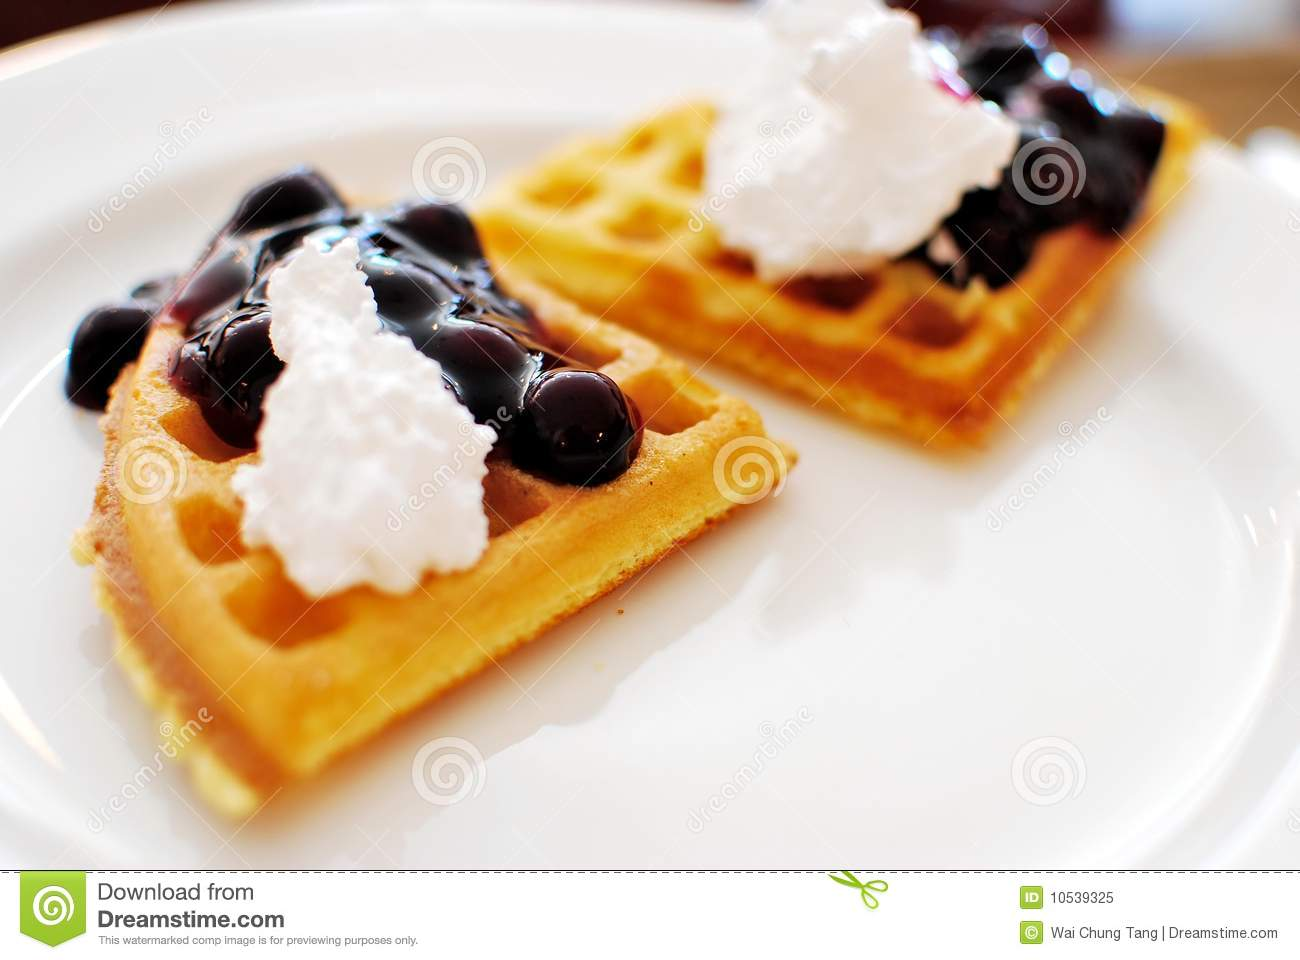 Western Waffles With Cream And Berry Toppings Royalty Free Stock Photo ...